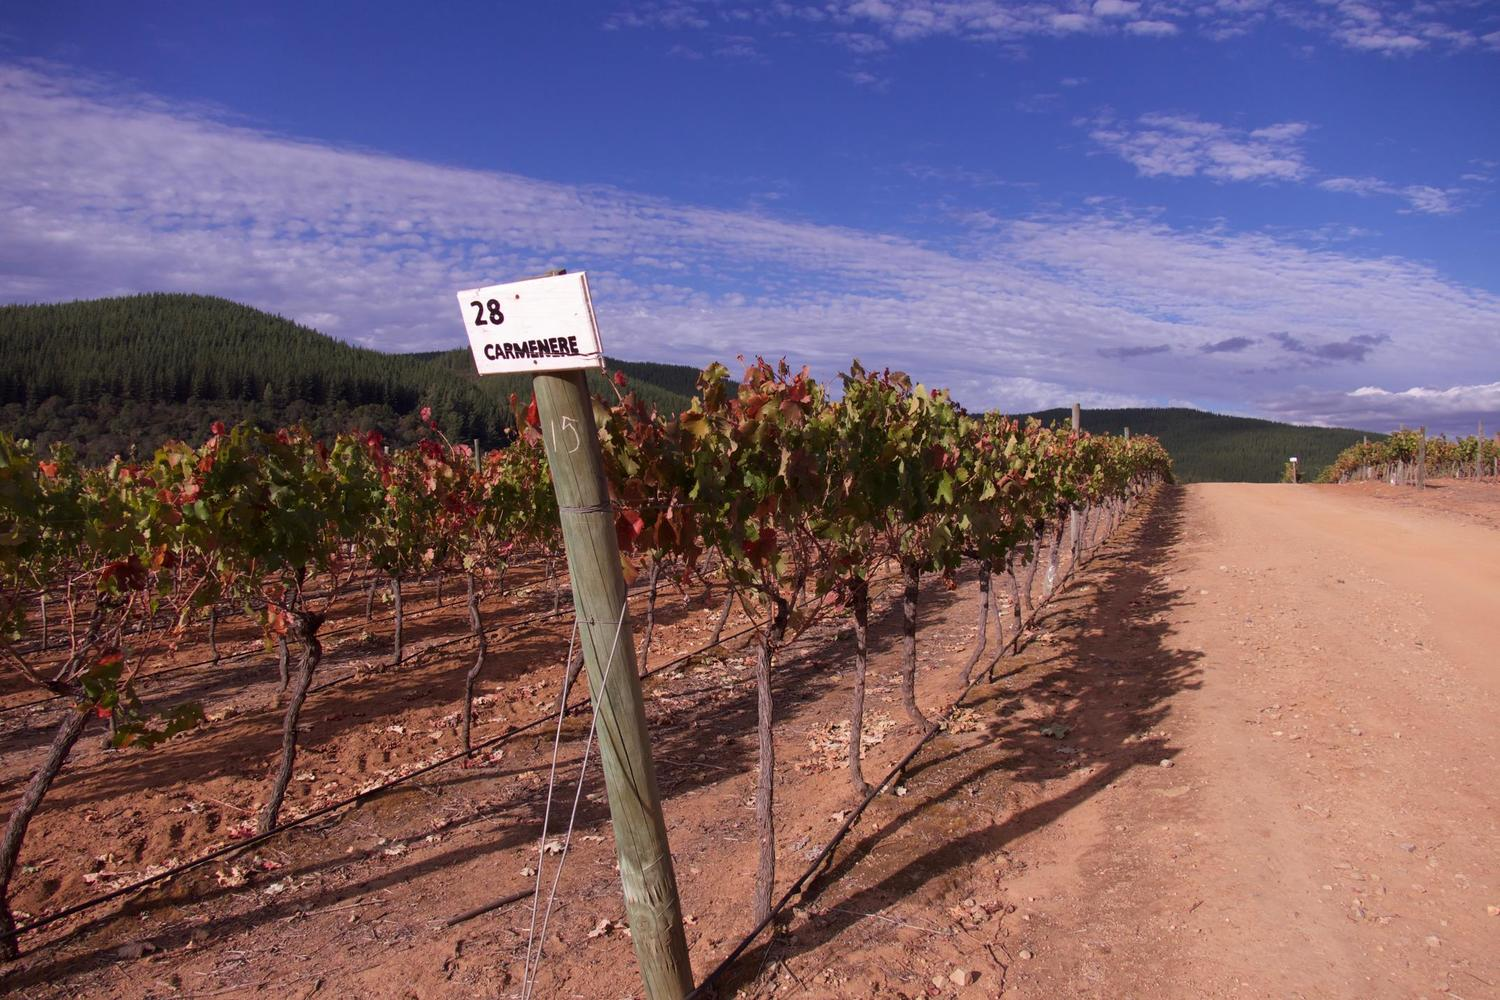 Carmenere vines in the Maule Valley